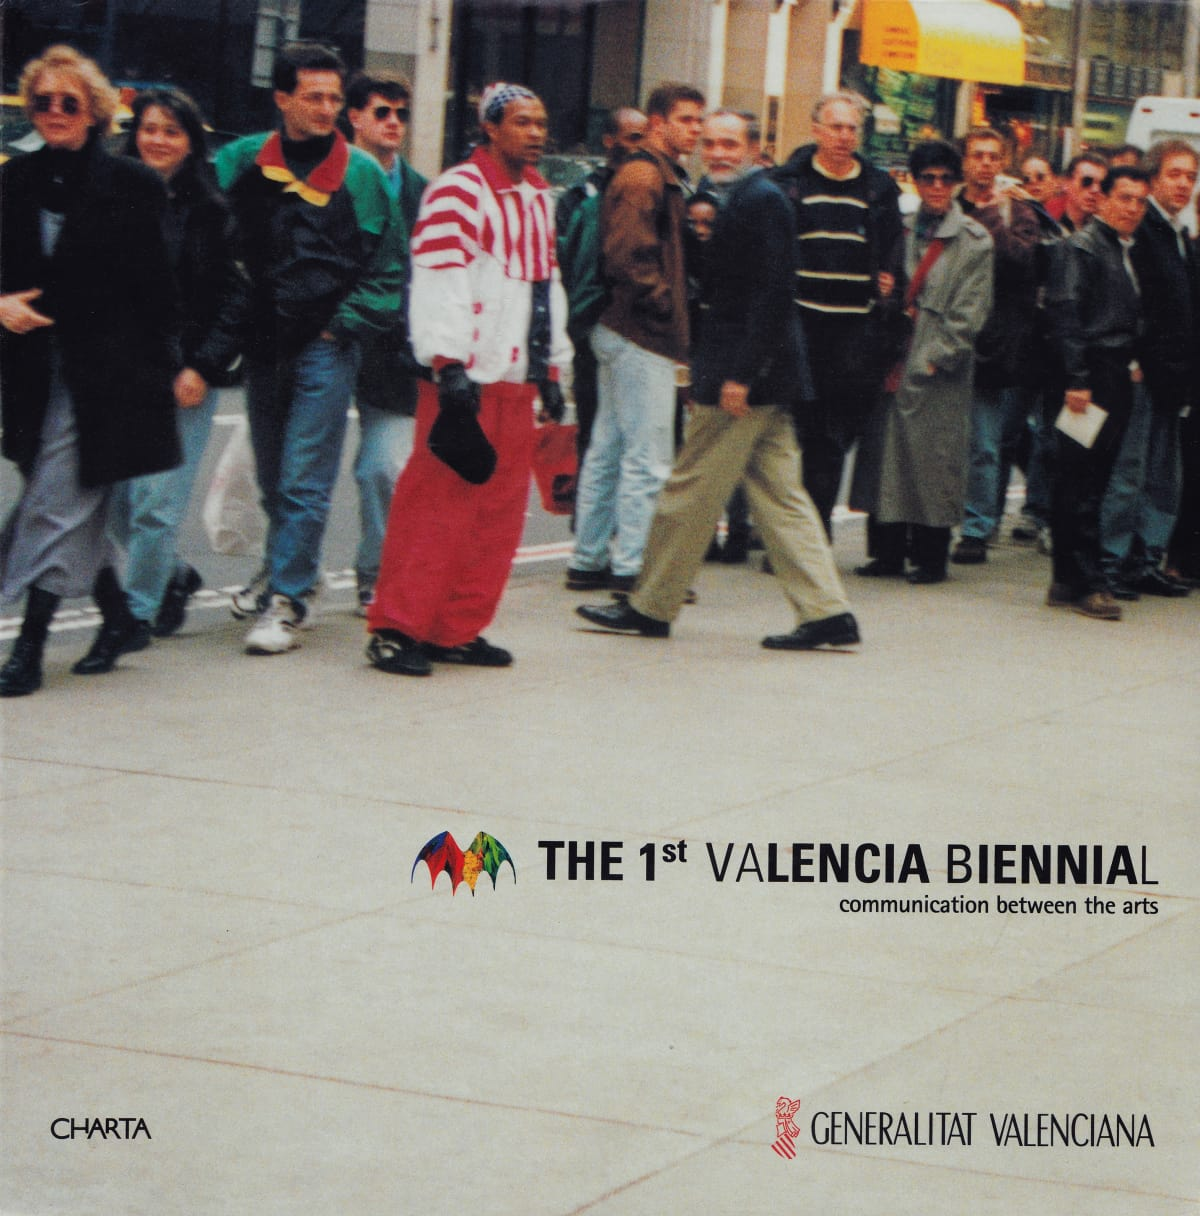 The 1st Valencia Biennial